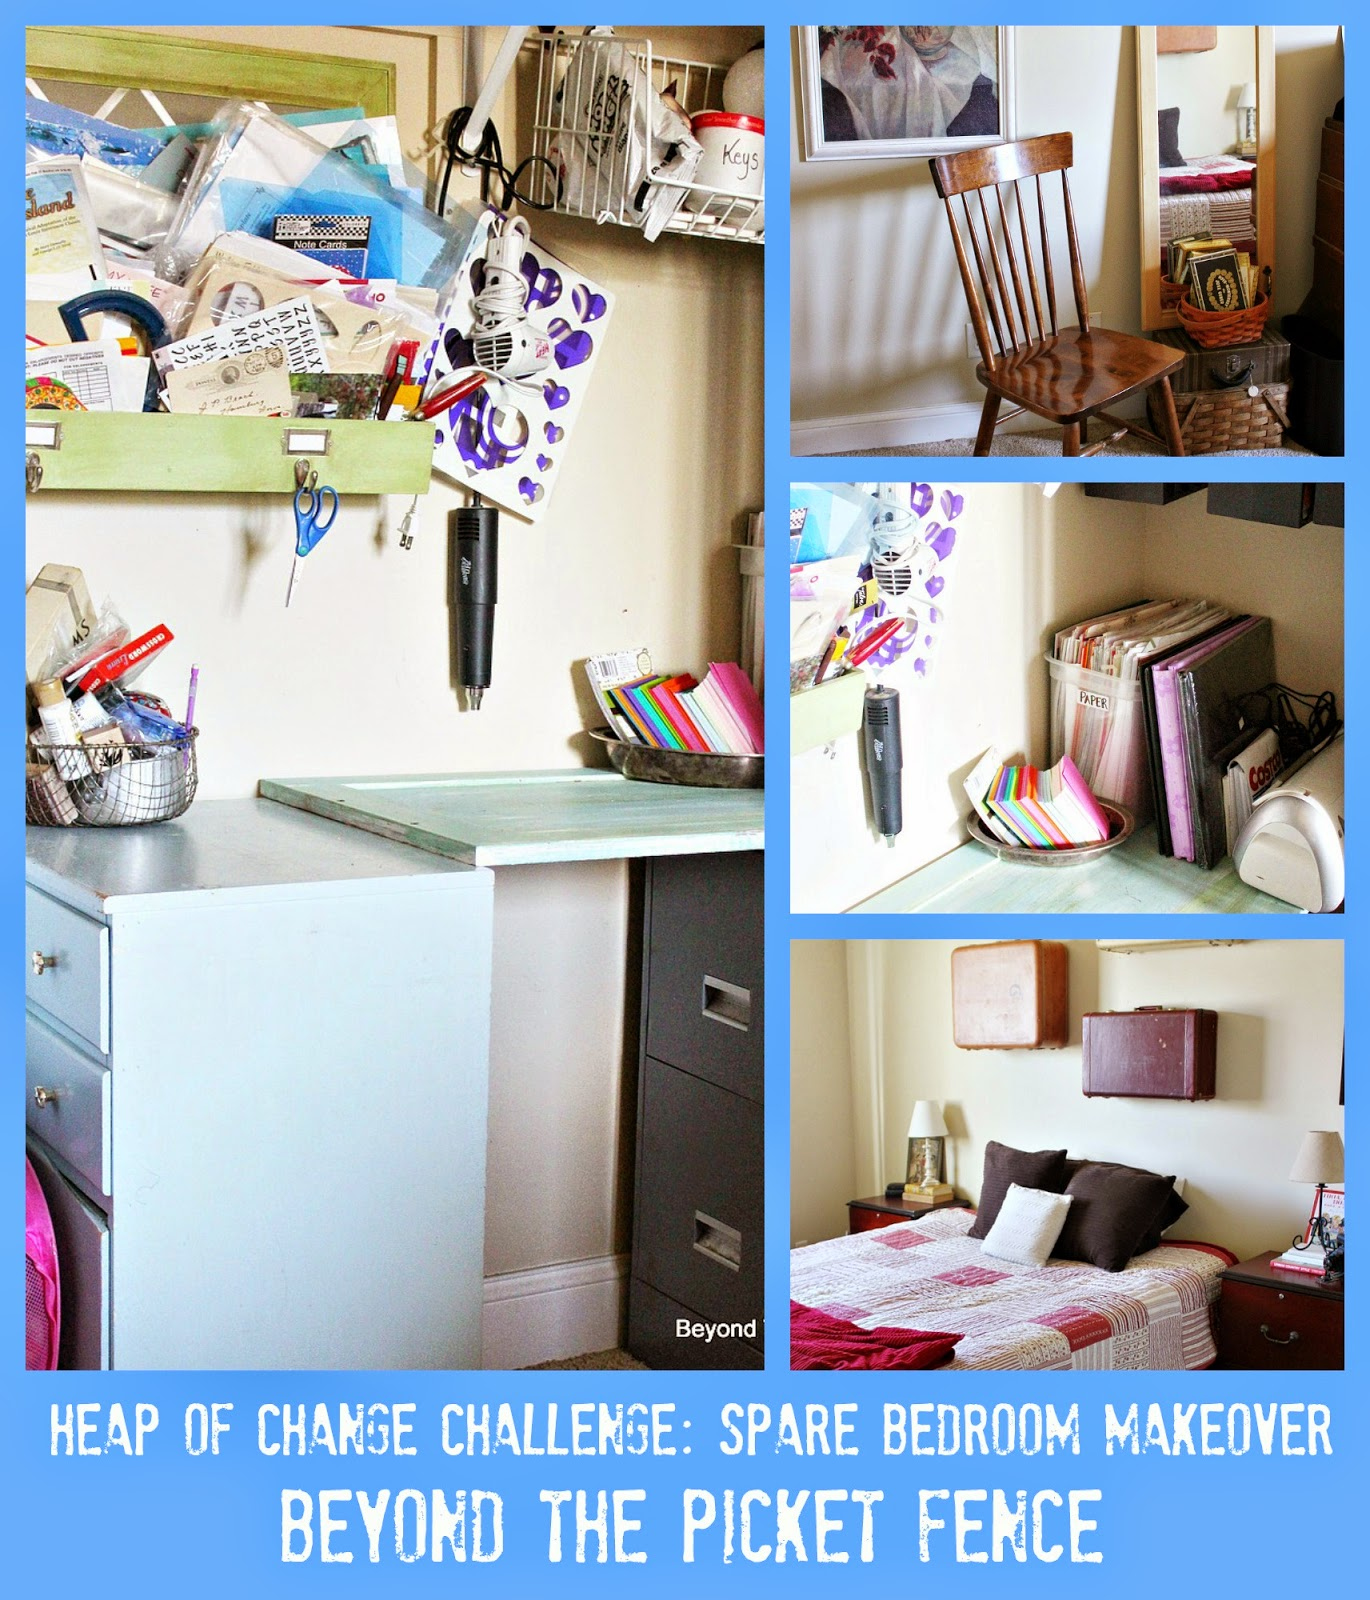 Oraganization, Heap of Change Challenge http://bec4-beyondthepicketfence.blogspot.com/2015/01/heap-of-change-challenge-week-3.html